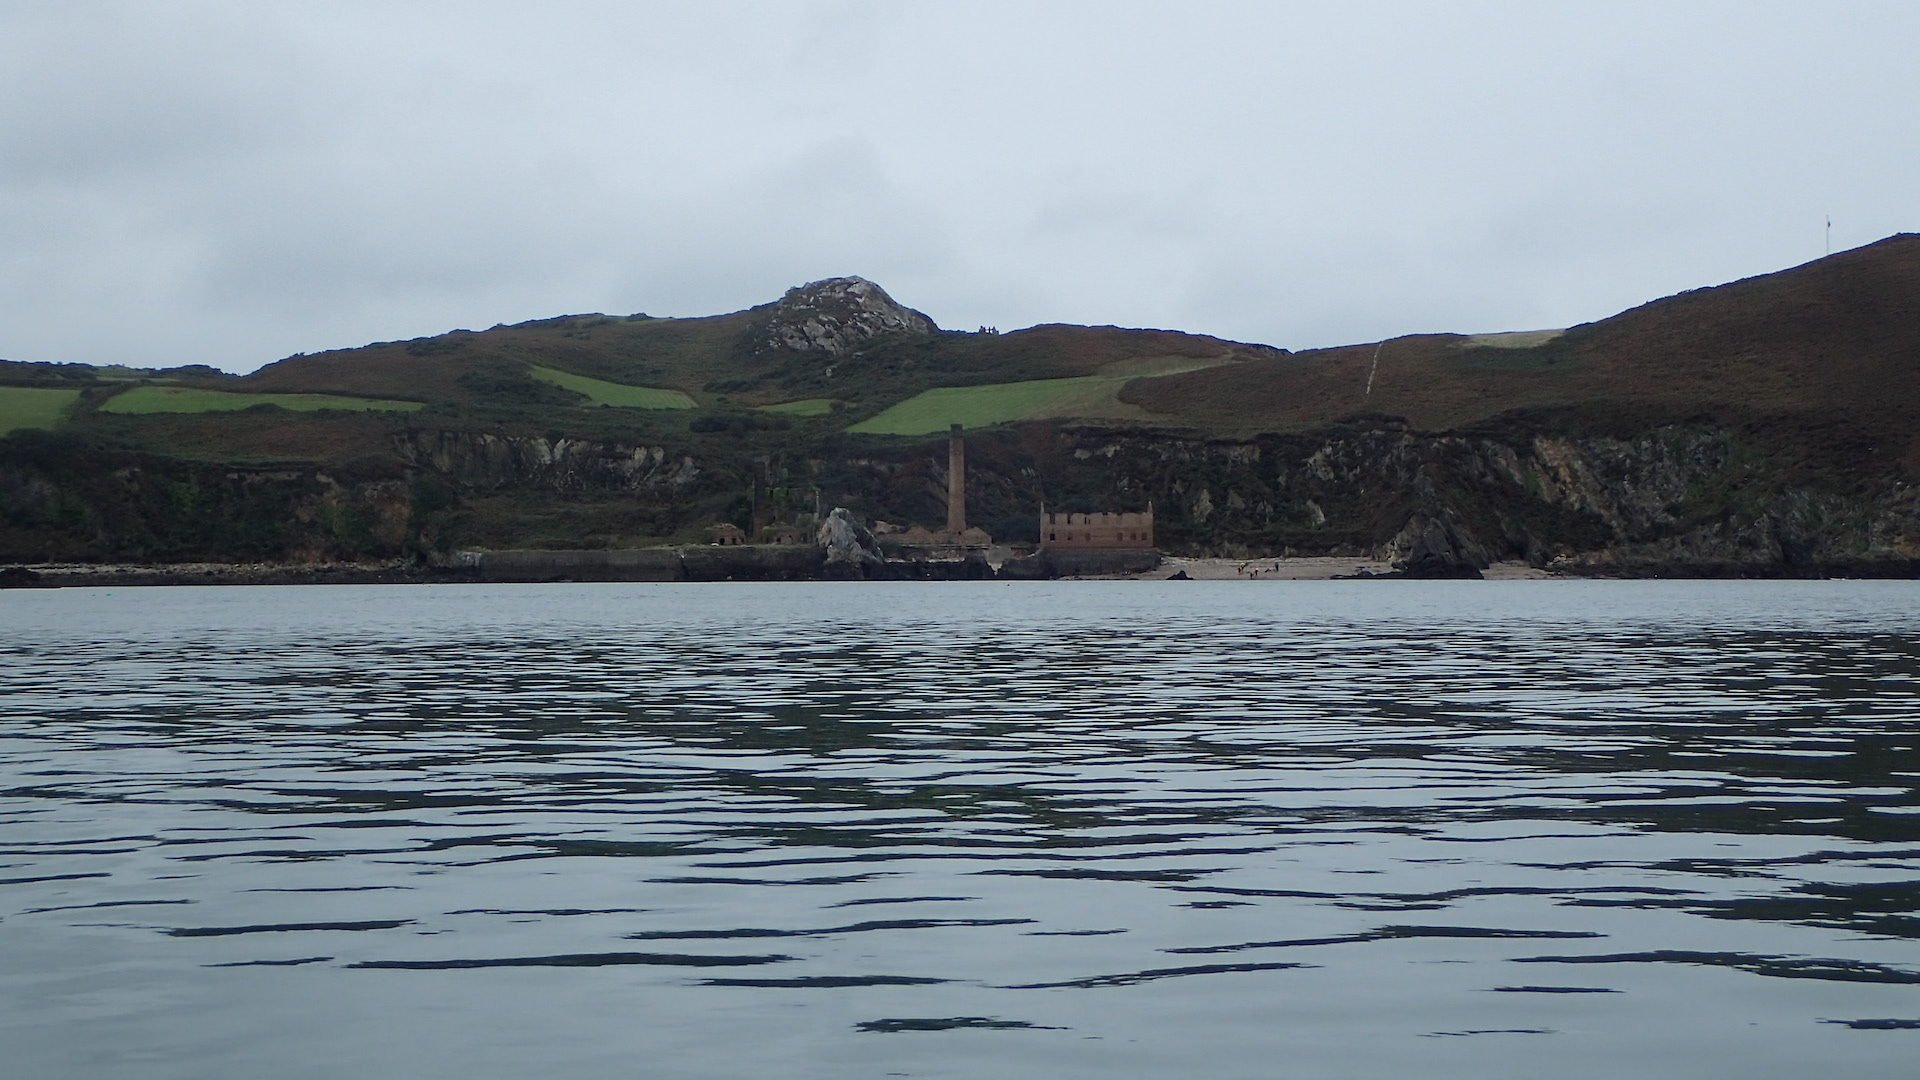 Cemlyn Bay to Point Lynas and a little beyond